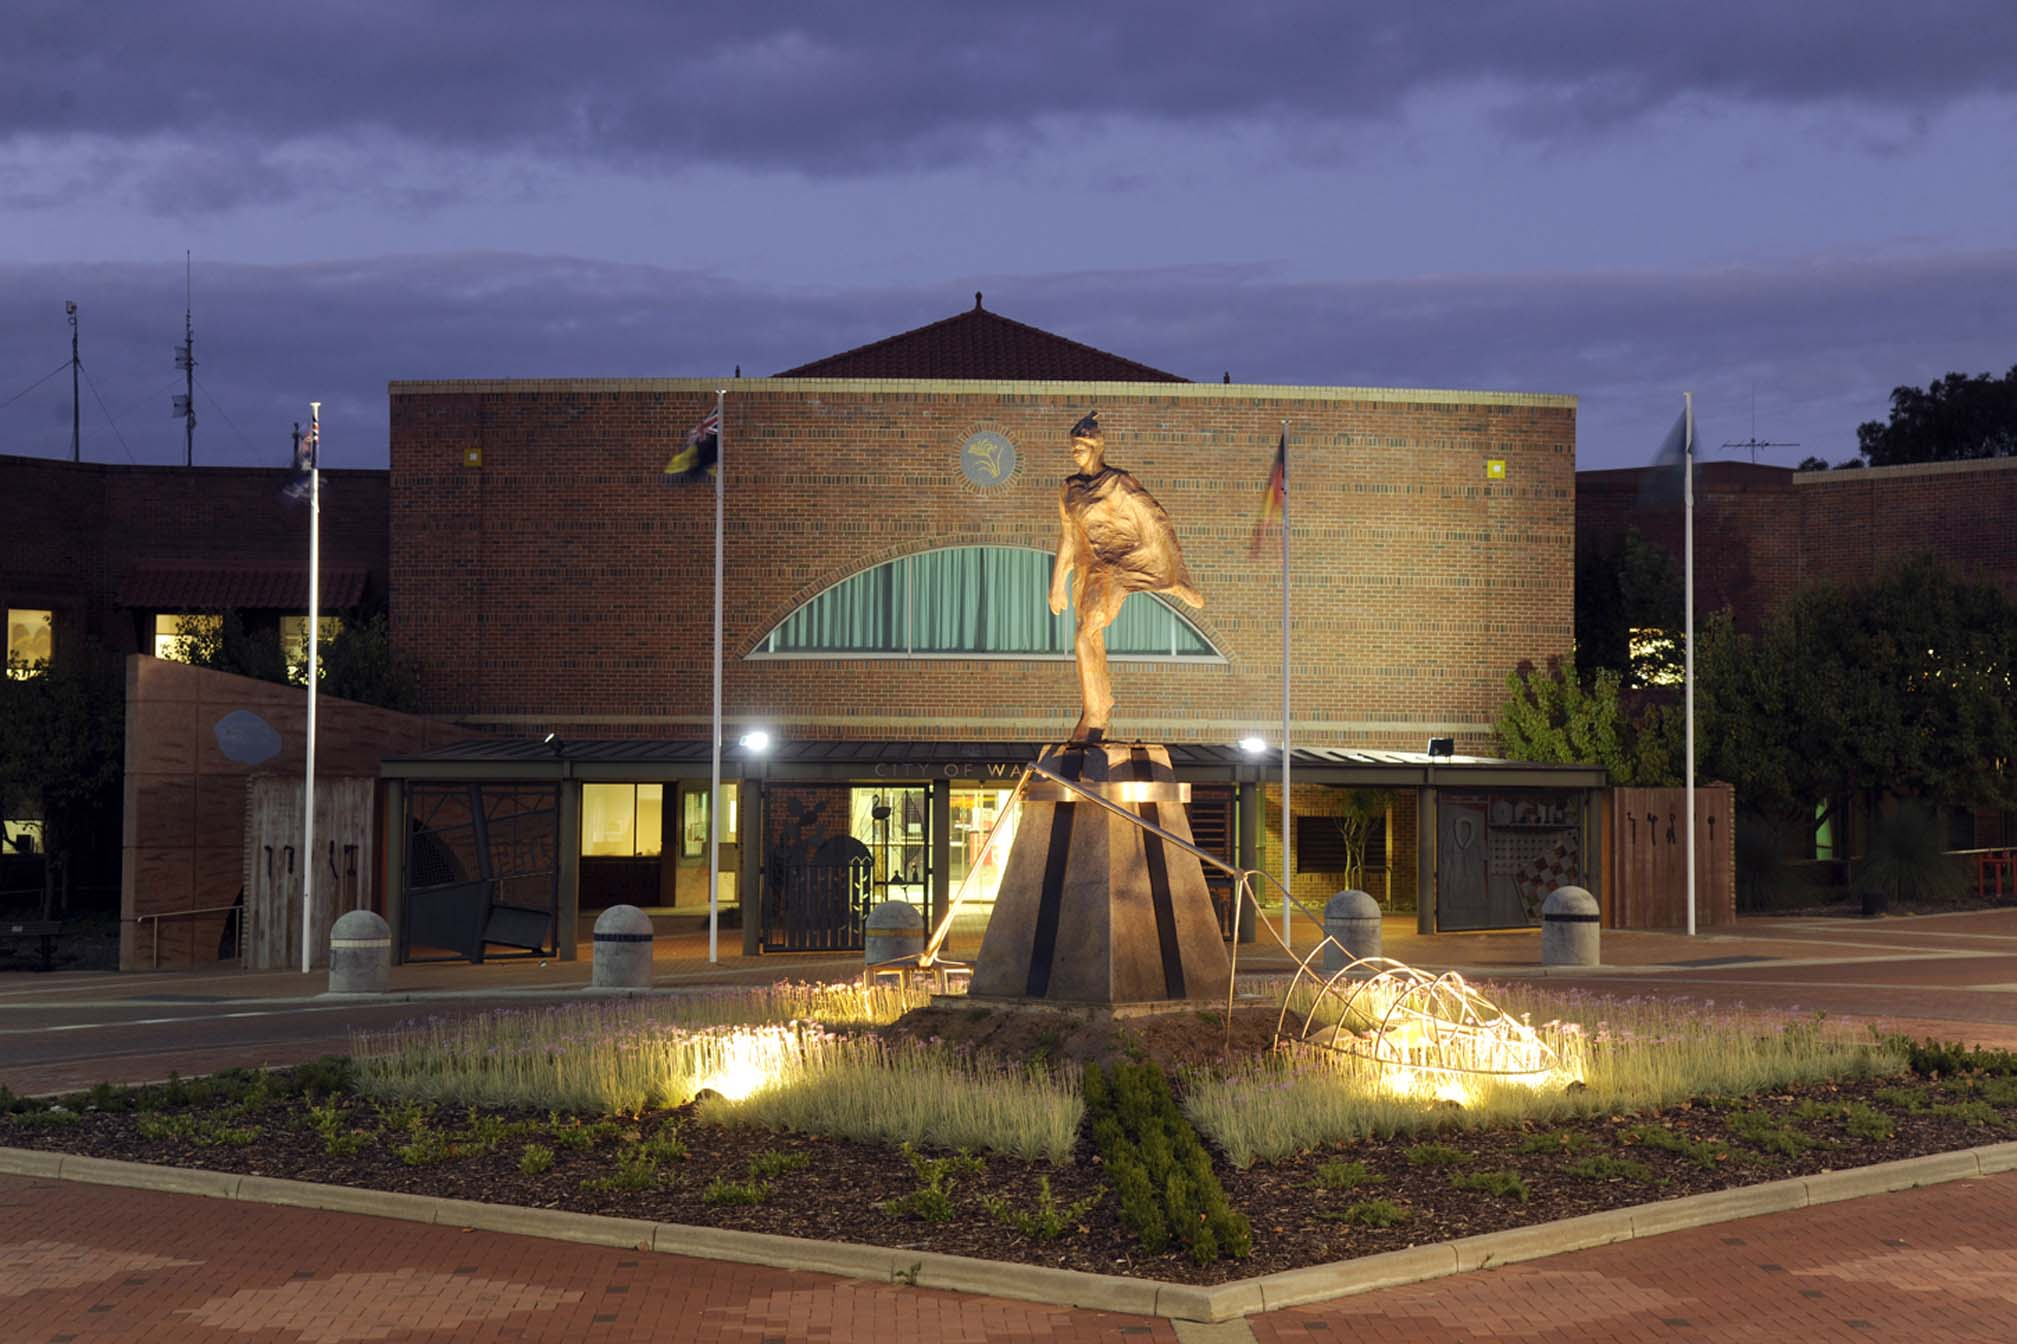 City of Wanneroo Civic Centre - night